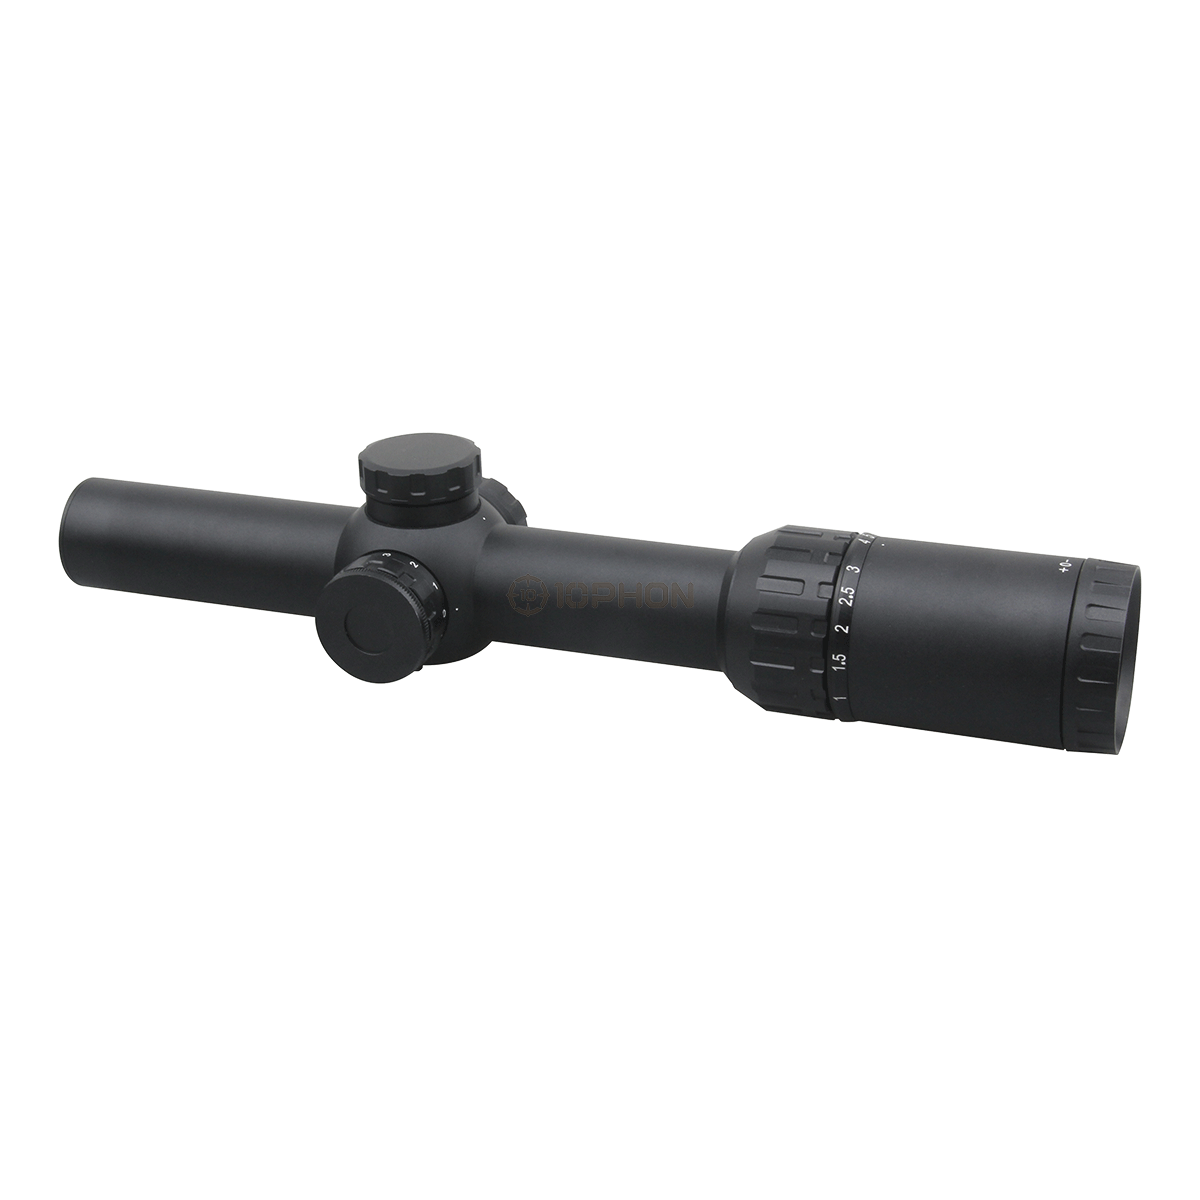 S035AS 10PHON COR 1-10×24 SFP Riflescope Featured Image